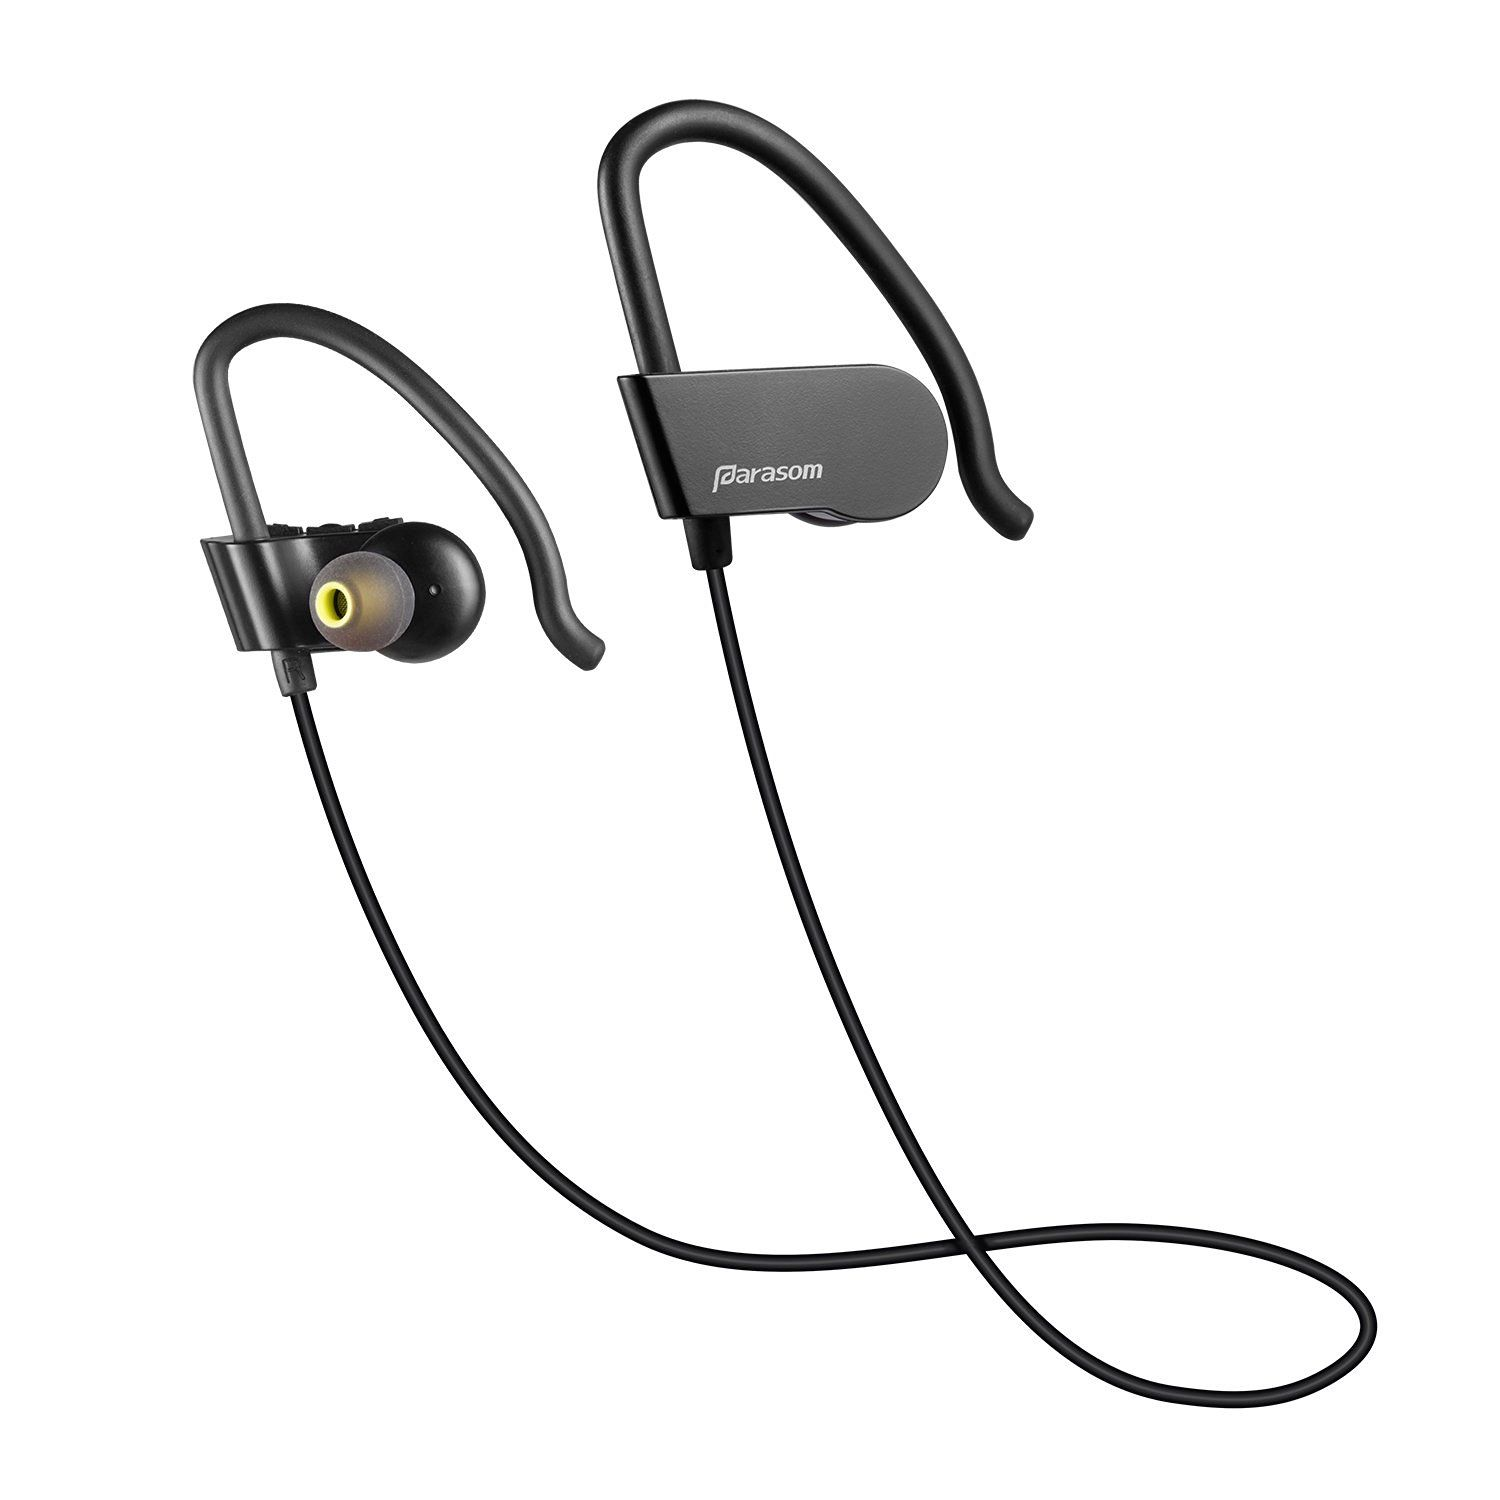 Parasom A8 Wireless Sports Headphones For Running or